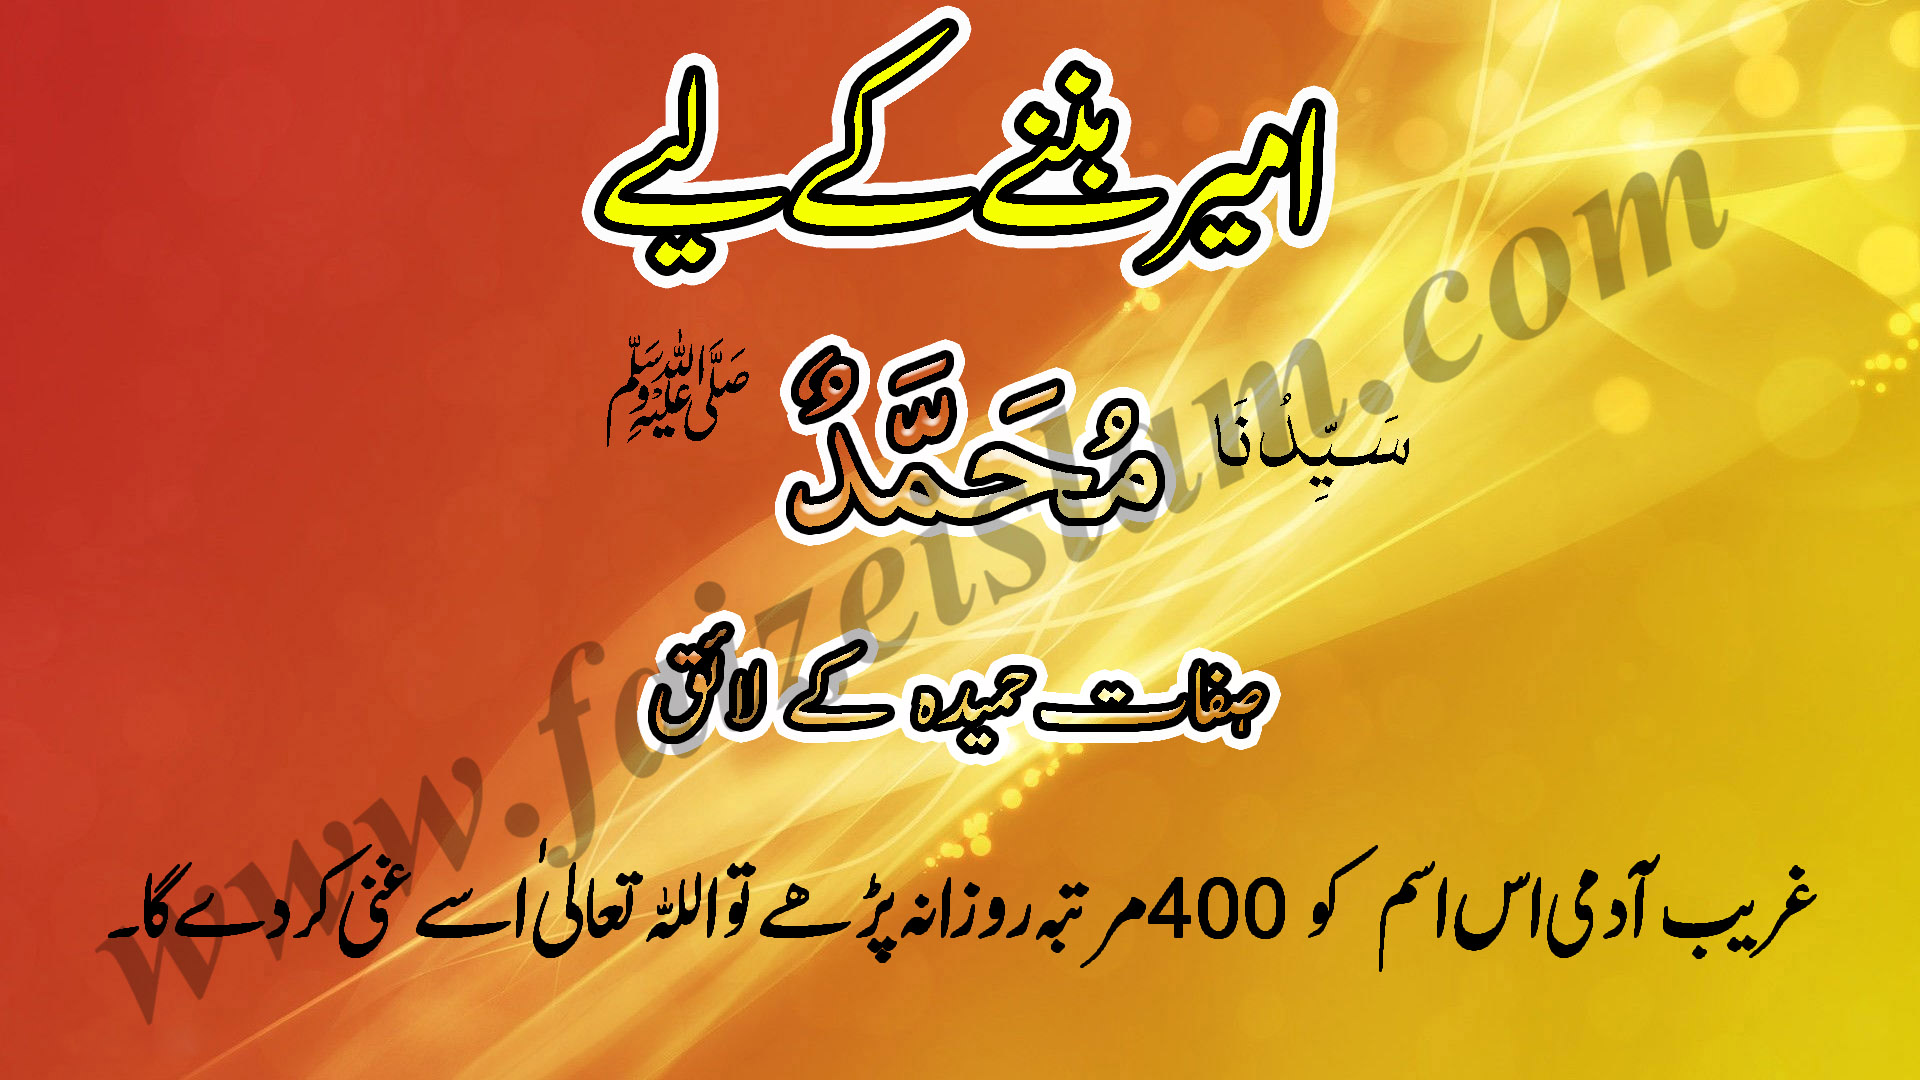 Wazifa for Money - Ameer Bannay Kay Liye Wazifa In Urdu